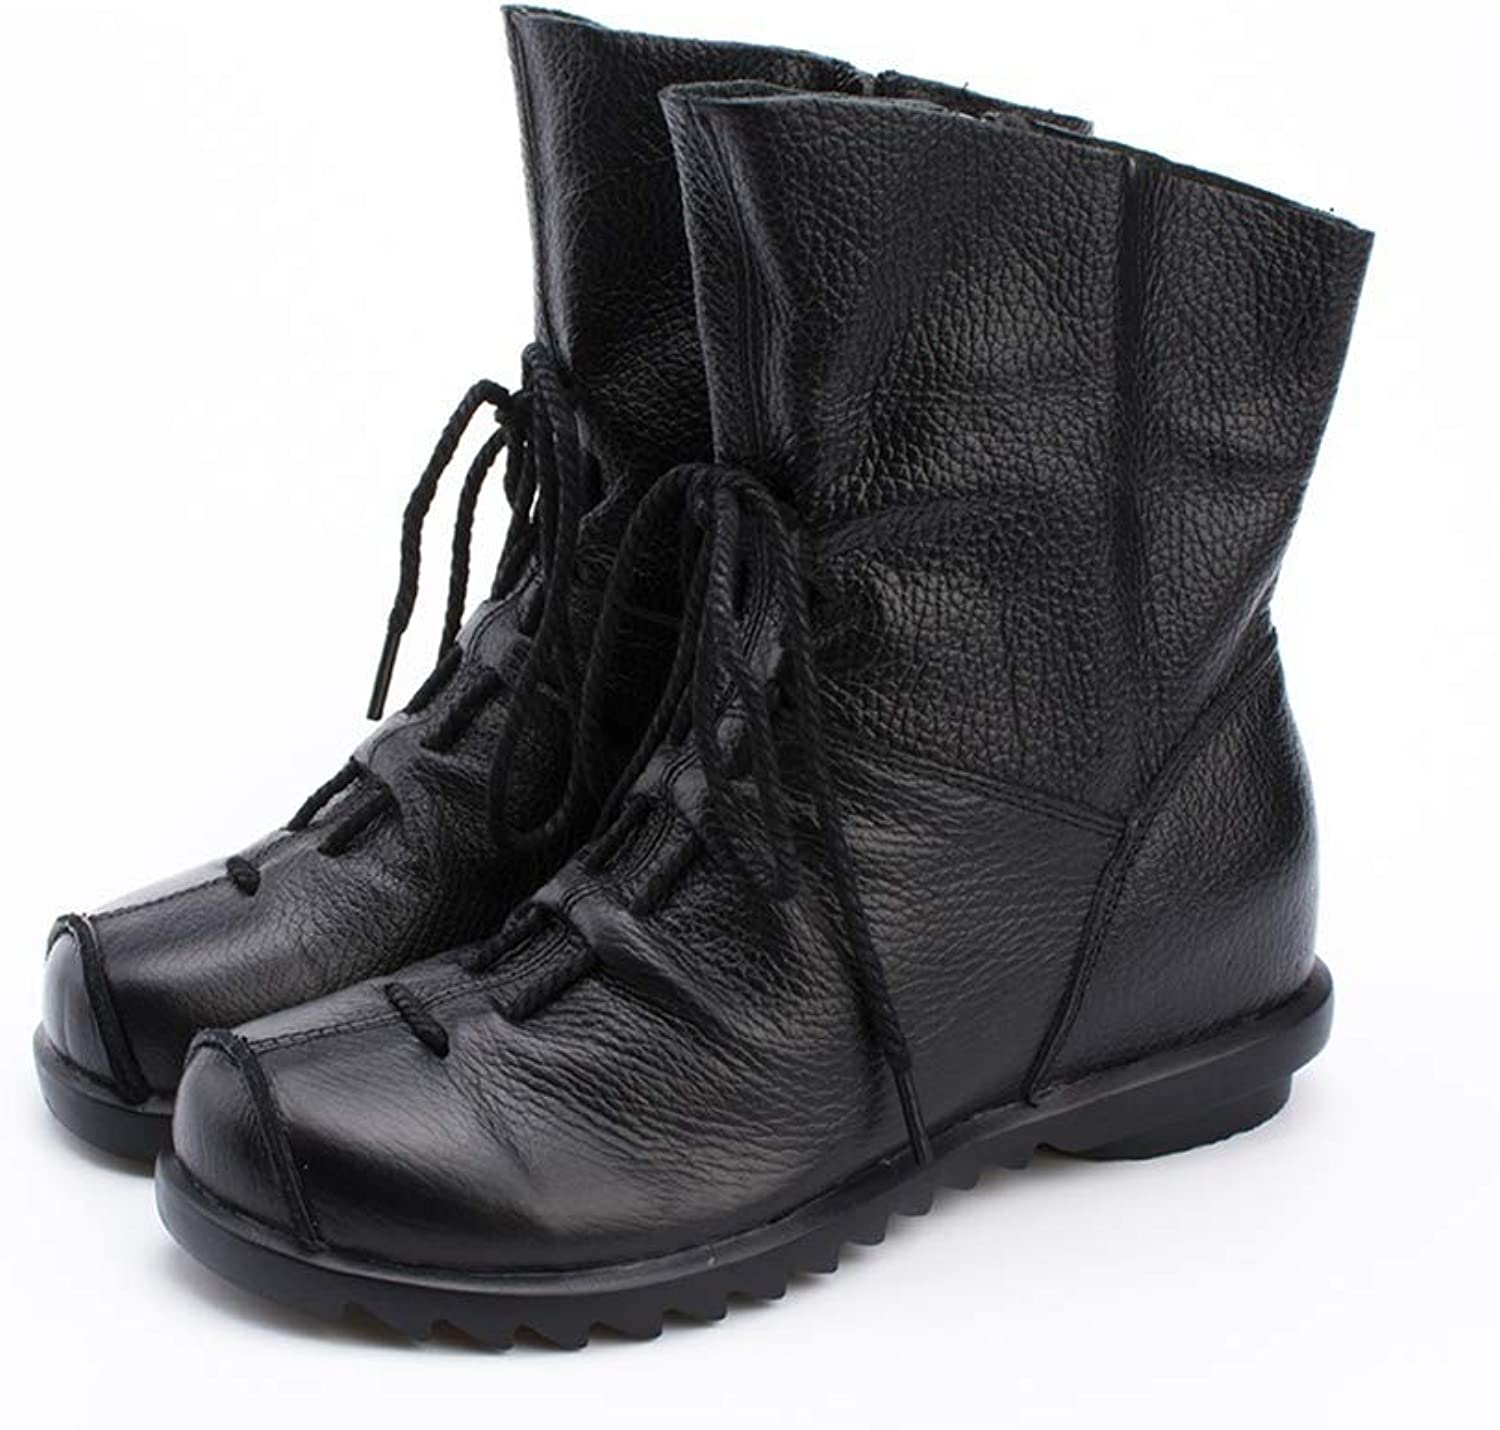 T-JULY Women's Plus Size Boots Winter Low Heel shoes Platform Casual Female Short Fashion Lace Up Snow Boots